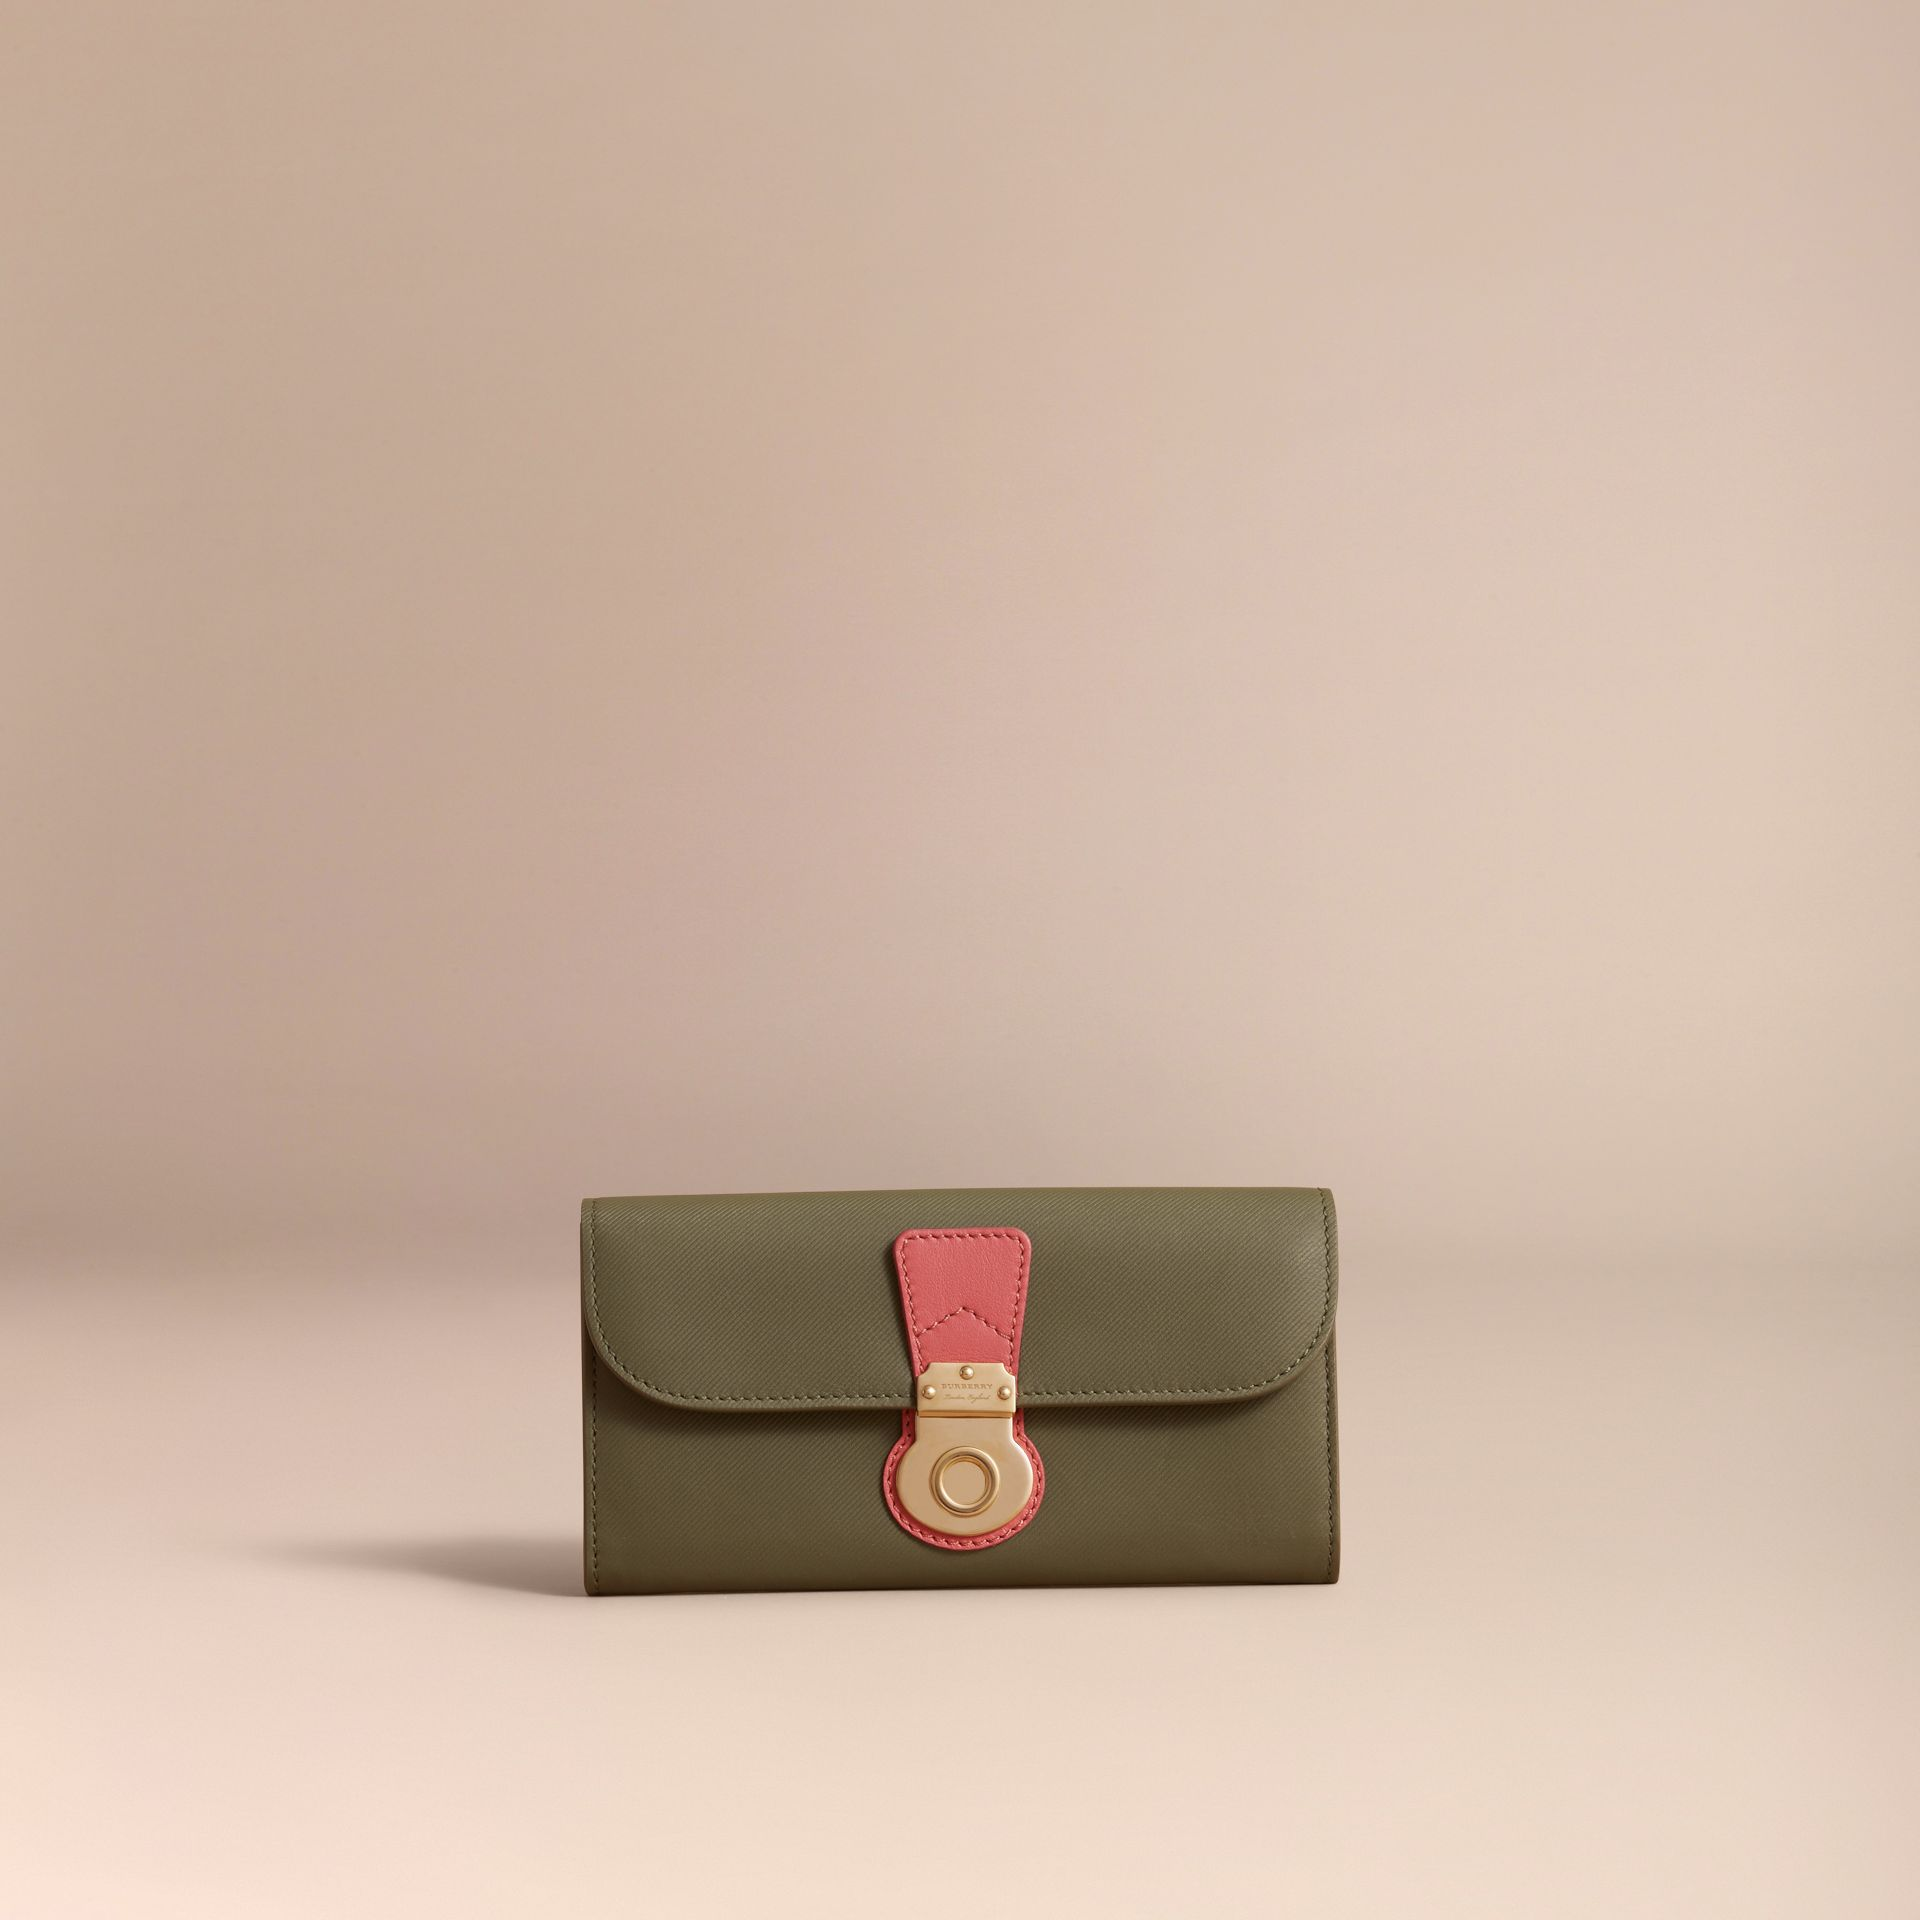 Two-tone Trench Leather Continental Wallet in Moss Green/ Blossom Pink - Women | Burberry Australia - gallery image 6